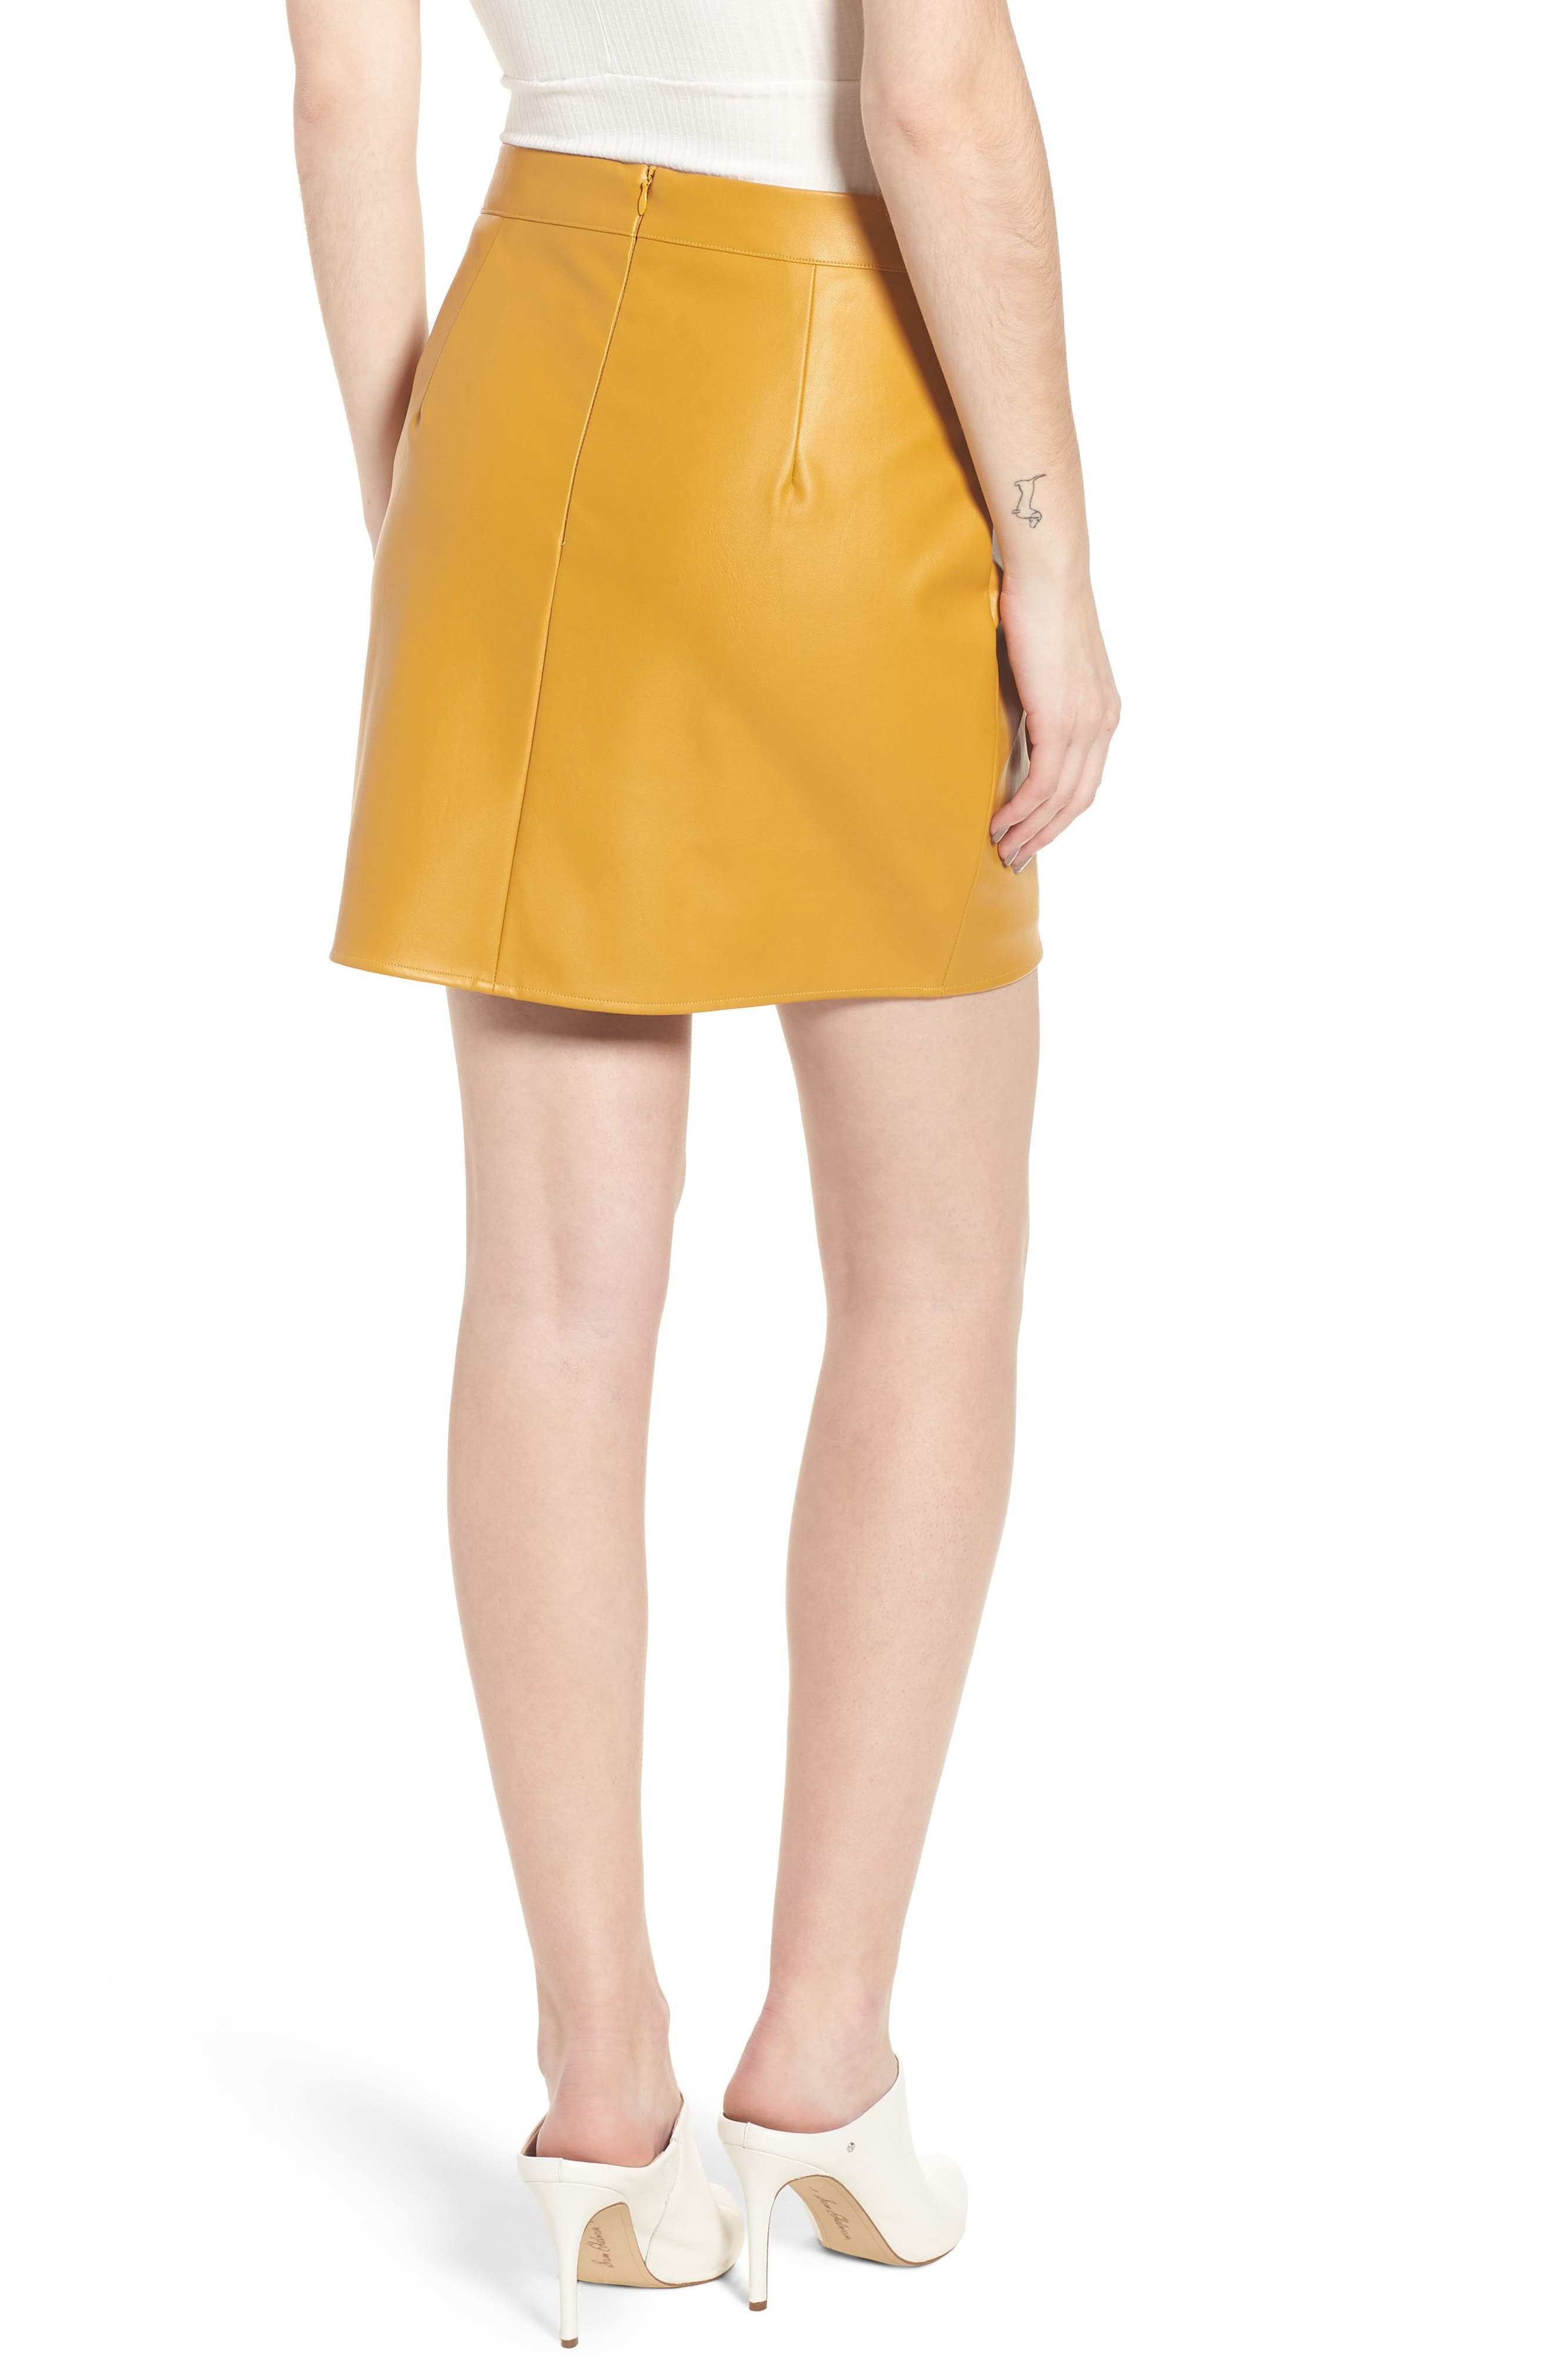 Bishop + Young Faux Leather Miniskirt,                             Alternate thumbnail 2, color,                             Mustard